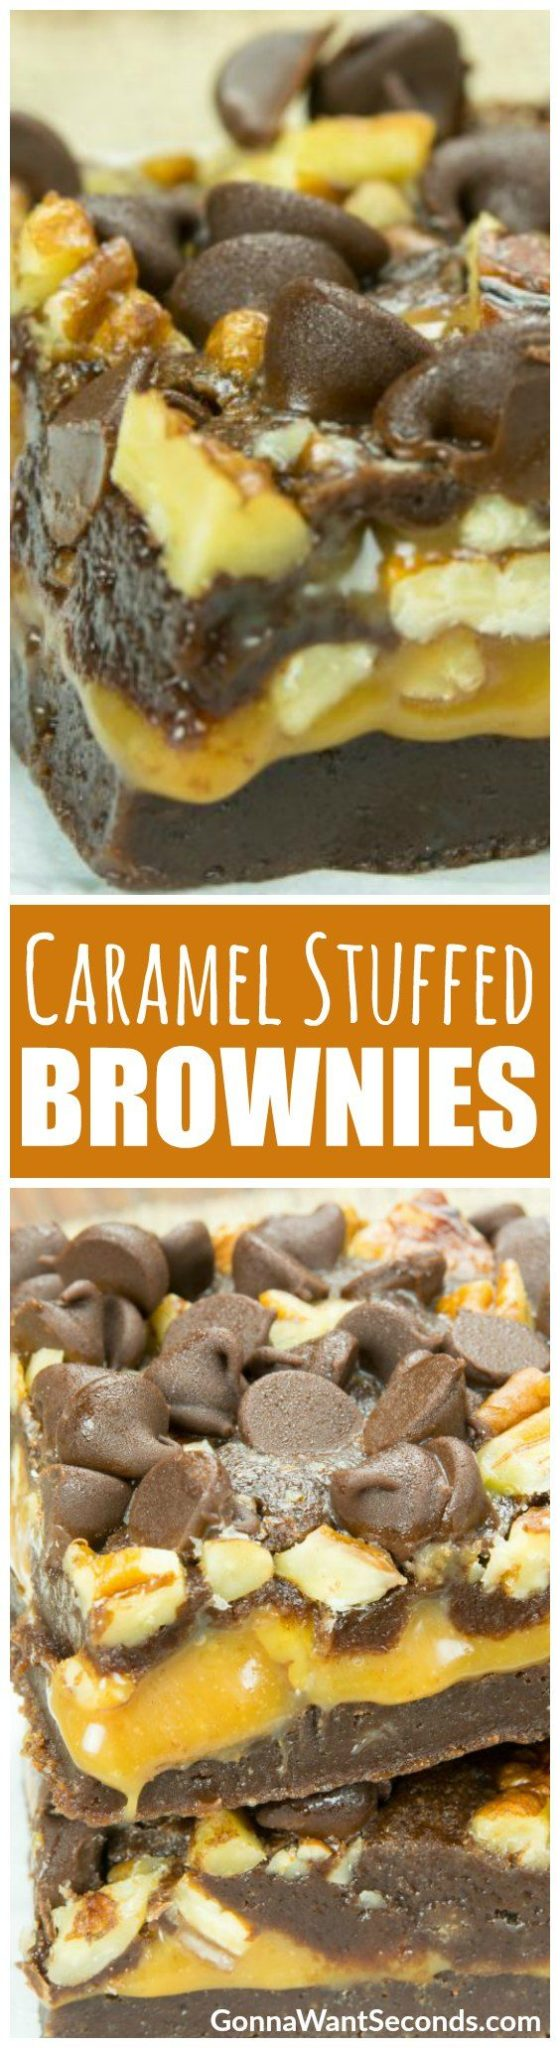 This is your ticket to brownie bliss – a rich, fudgy brownie wrapped around a thick, buttery caramel layer and topped with crisp pecans and chocolate chips. Bring on the sweet, sweet chocolate coma! #Chocolate #Caramel #Brownies #FromScratch #Recipe #Easy #Desserts #Gooey #Fudgy #ChocolateChips #Sweet #Treats #Pecans #Chewy #Layers #Simple #Bars #Baking